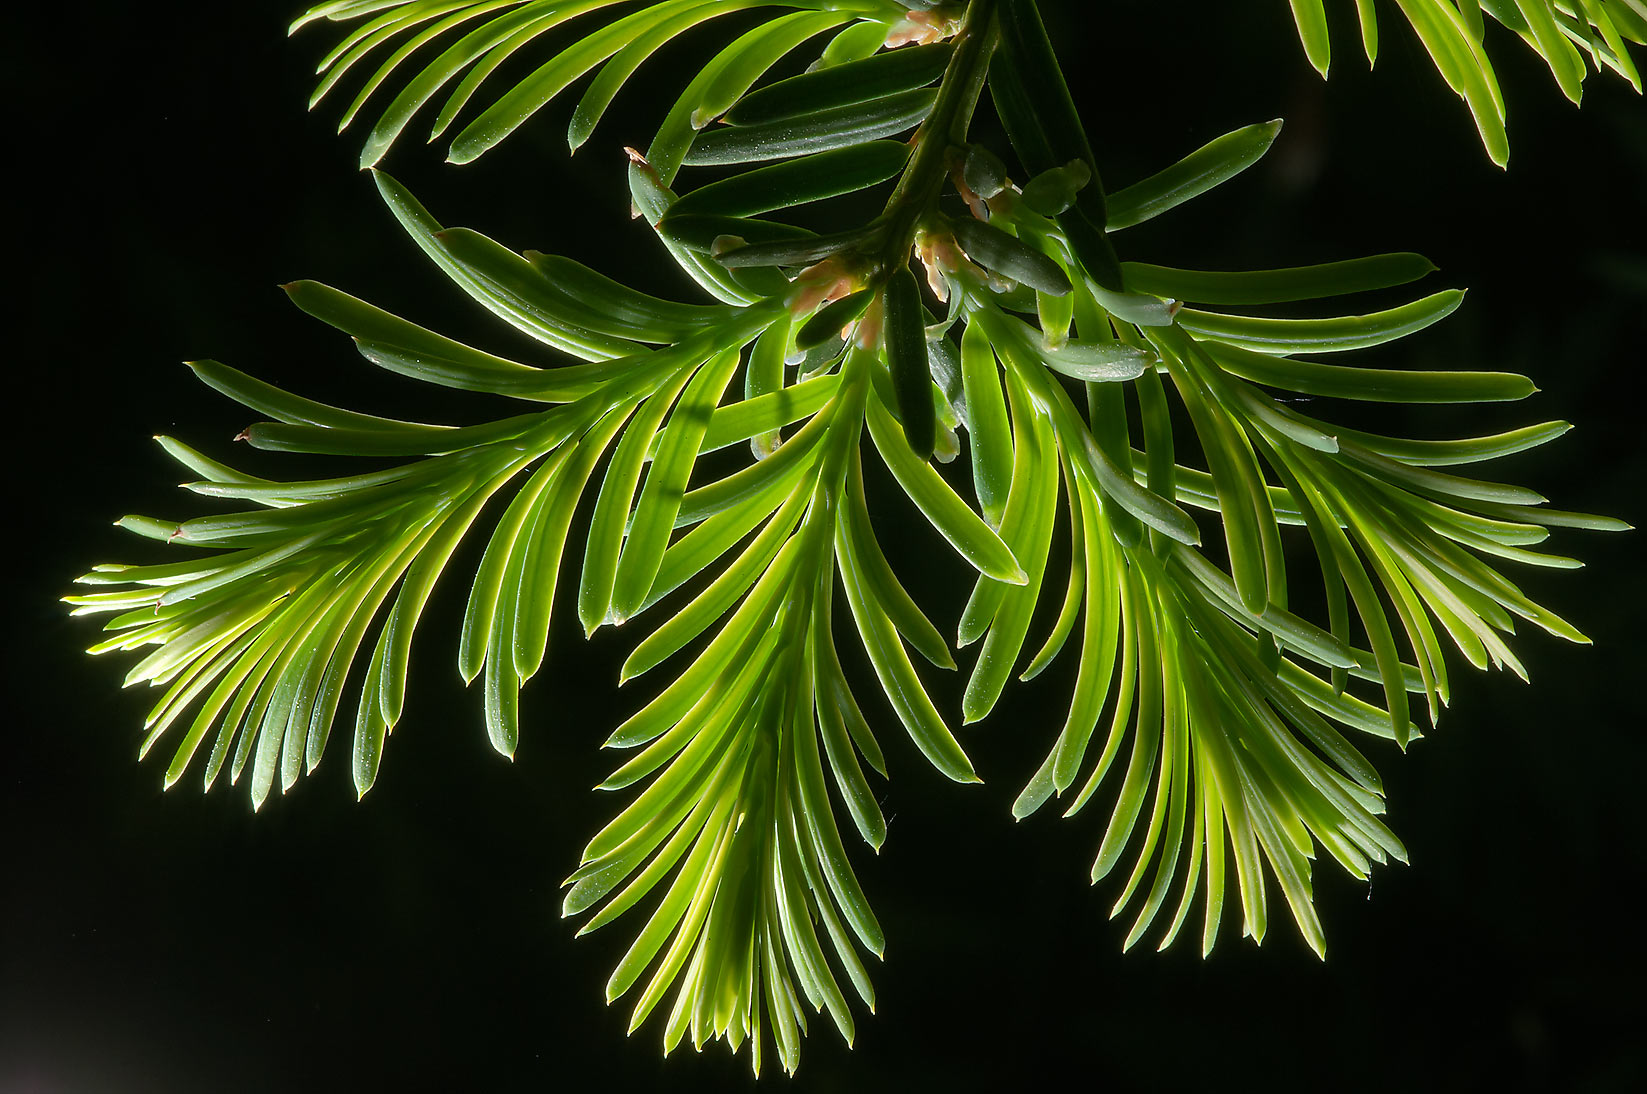 Young needles of fir tree in Botanic Gardens of...Institute. St.Petersburg, Russia